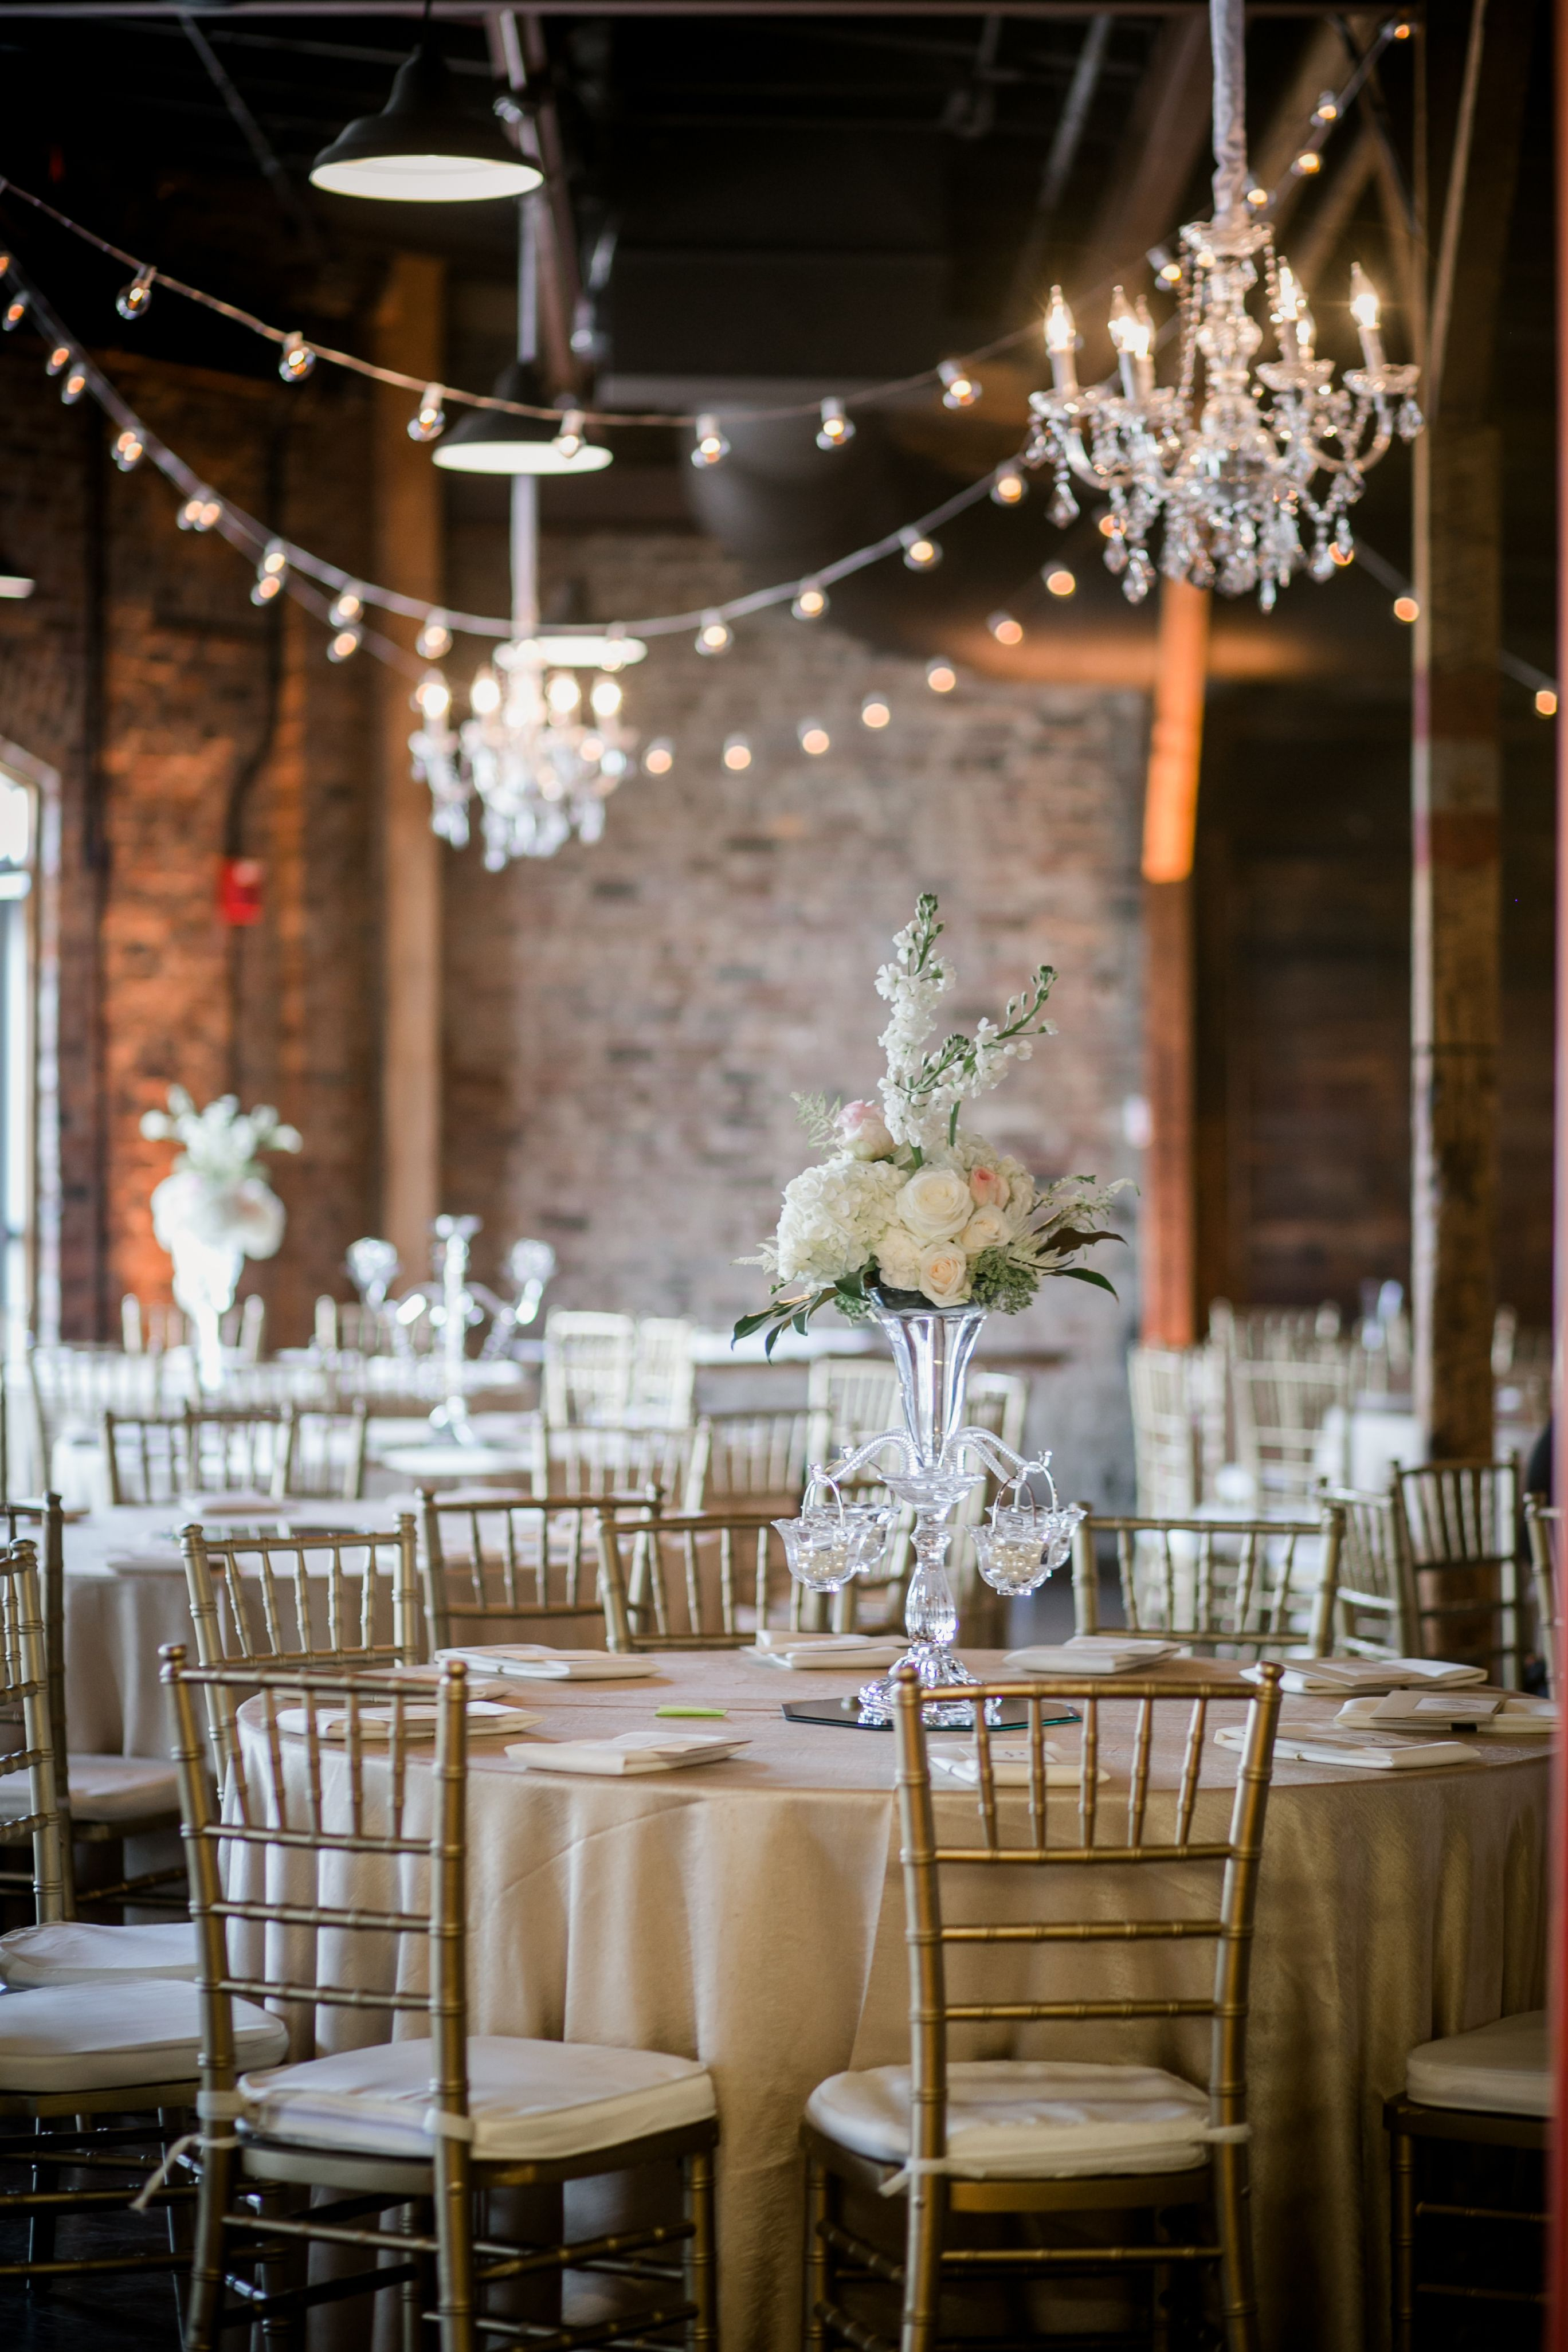 Classic Wedding At Houston Station Southern Events Party Rental Company Franklin Nashville Middle Tennessee Wedding Classic Gold Chiavari Chairs Luxury Wedding Venues